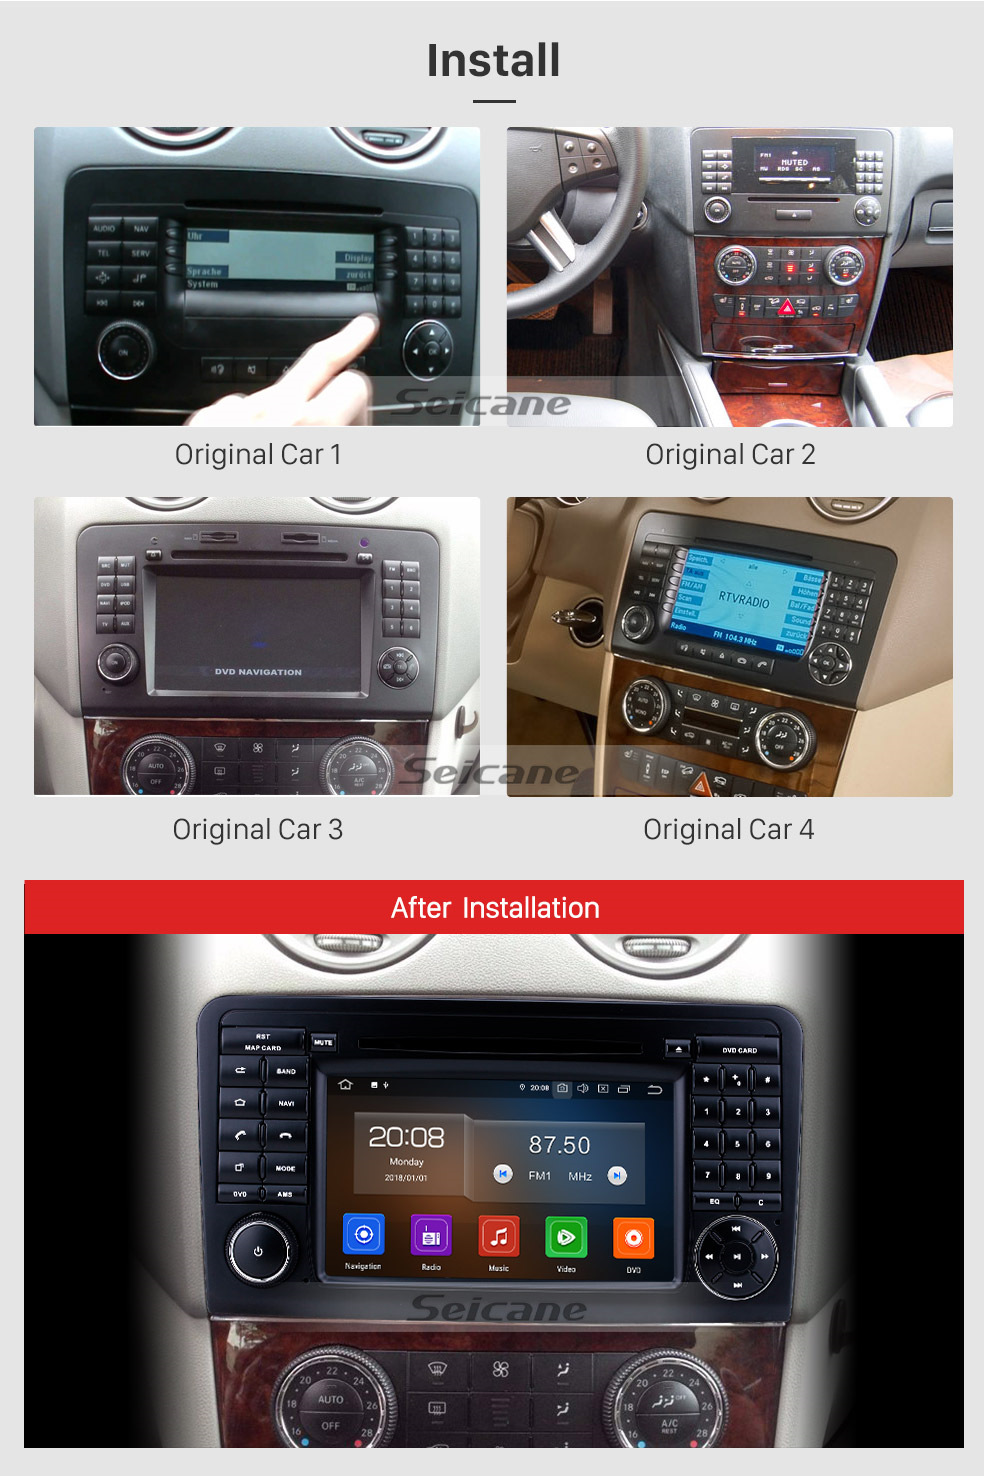 Seicane 7 inch Android 10.0 HD Touchscreen GPS Navigation Radio for 2005-2012 Mercedes Benz ML CLASS W164 ML350 ML430 ML450 ML500/GL CLASS X164 GL320 with Carplay Bluetooth support Mirror Link